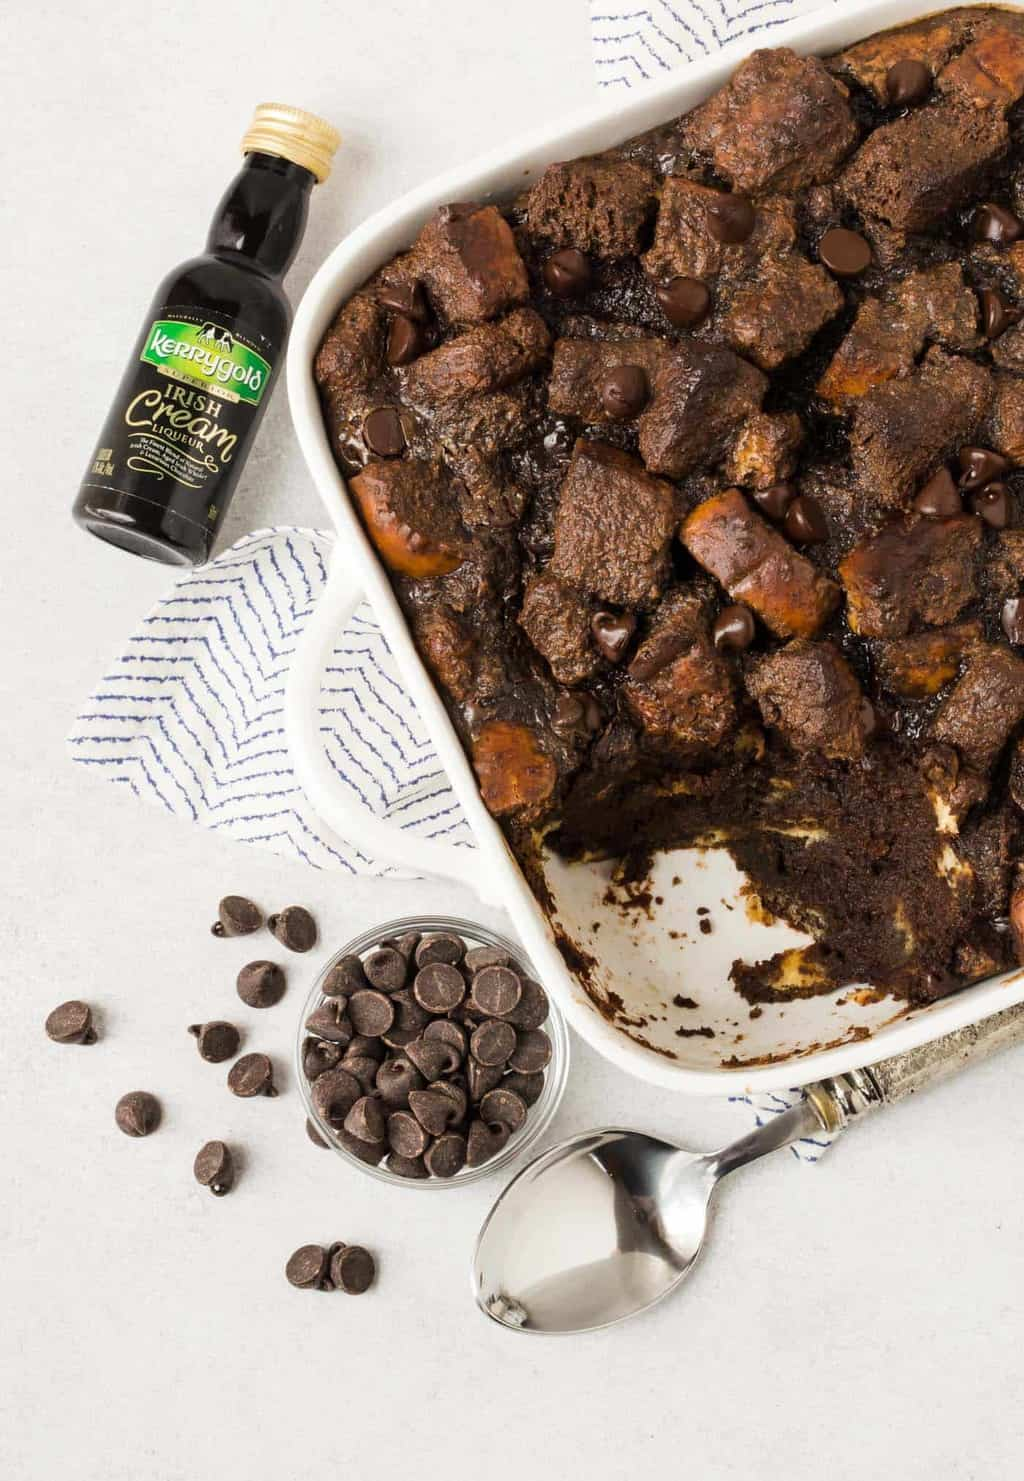 White casserole dish filled with Chocolate Irish Cream Bread Pudding. Small bowl of dark chocolate chips and a bottle of Kerrygold Irish Cream Liqueur are nearby.